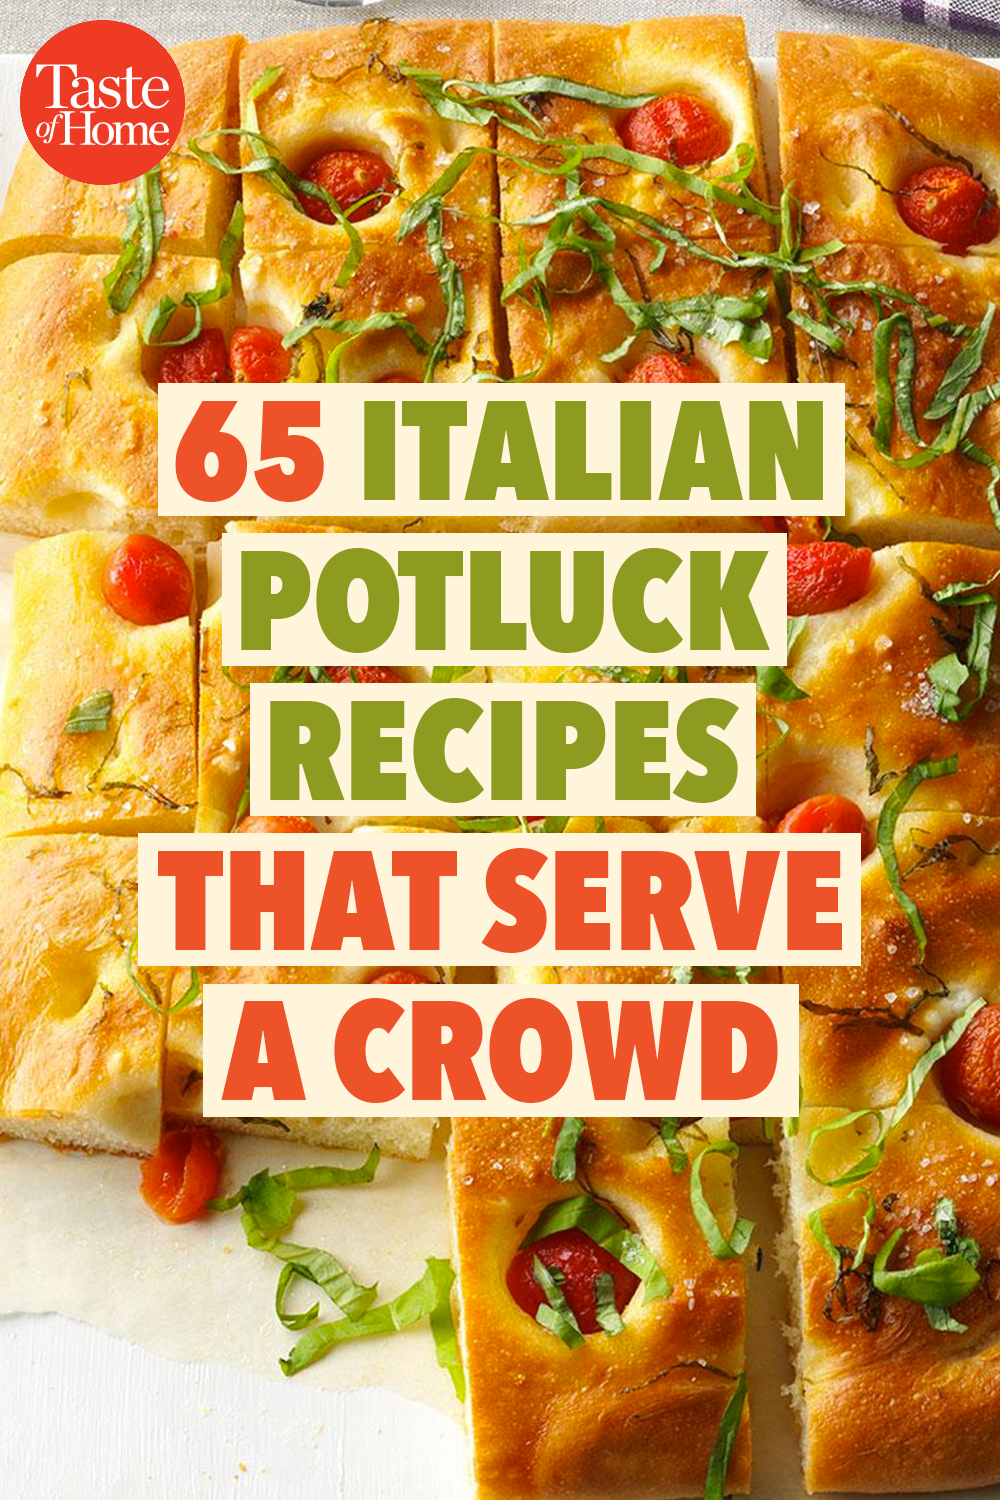 65 Italian Potluck Recipes That Serve a Crowd #potluckrecipes